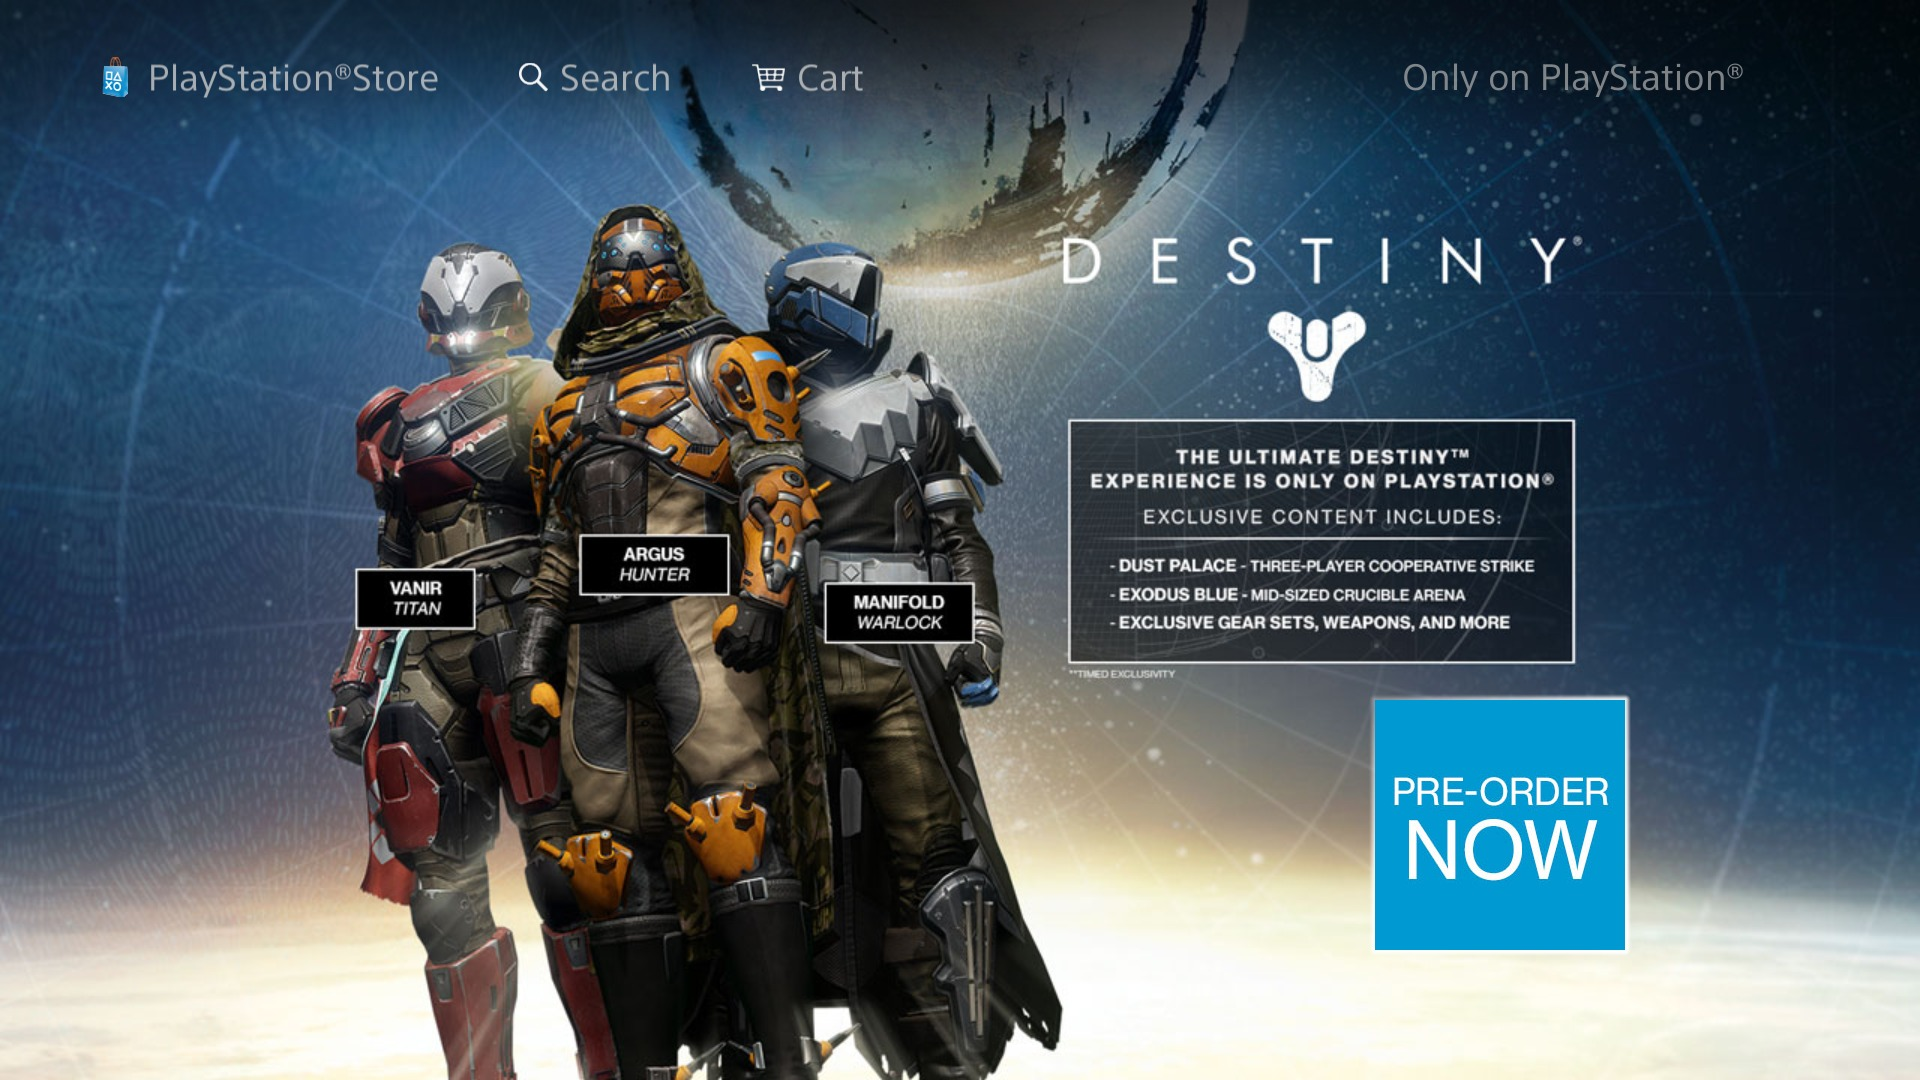 Just push start destiny s playstation exclusives will eventually